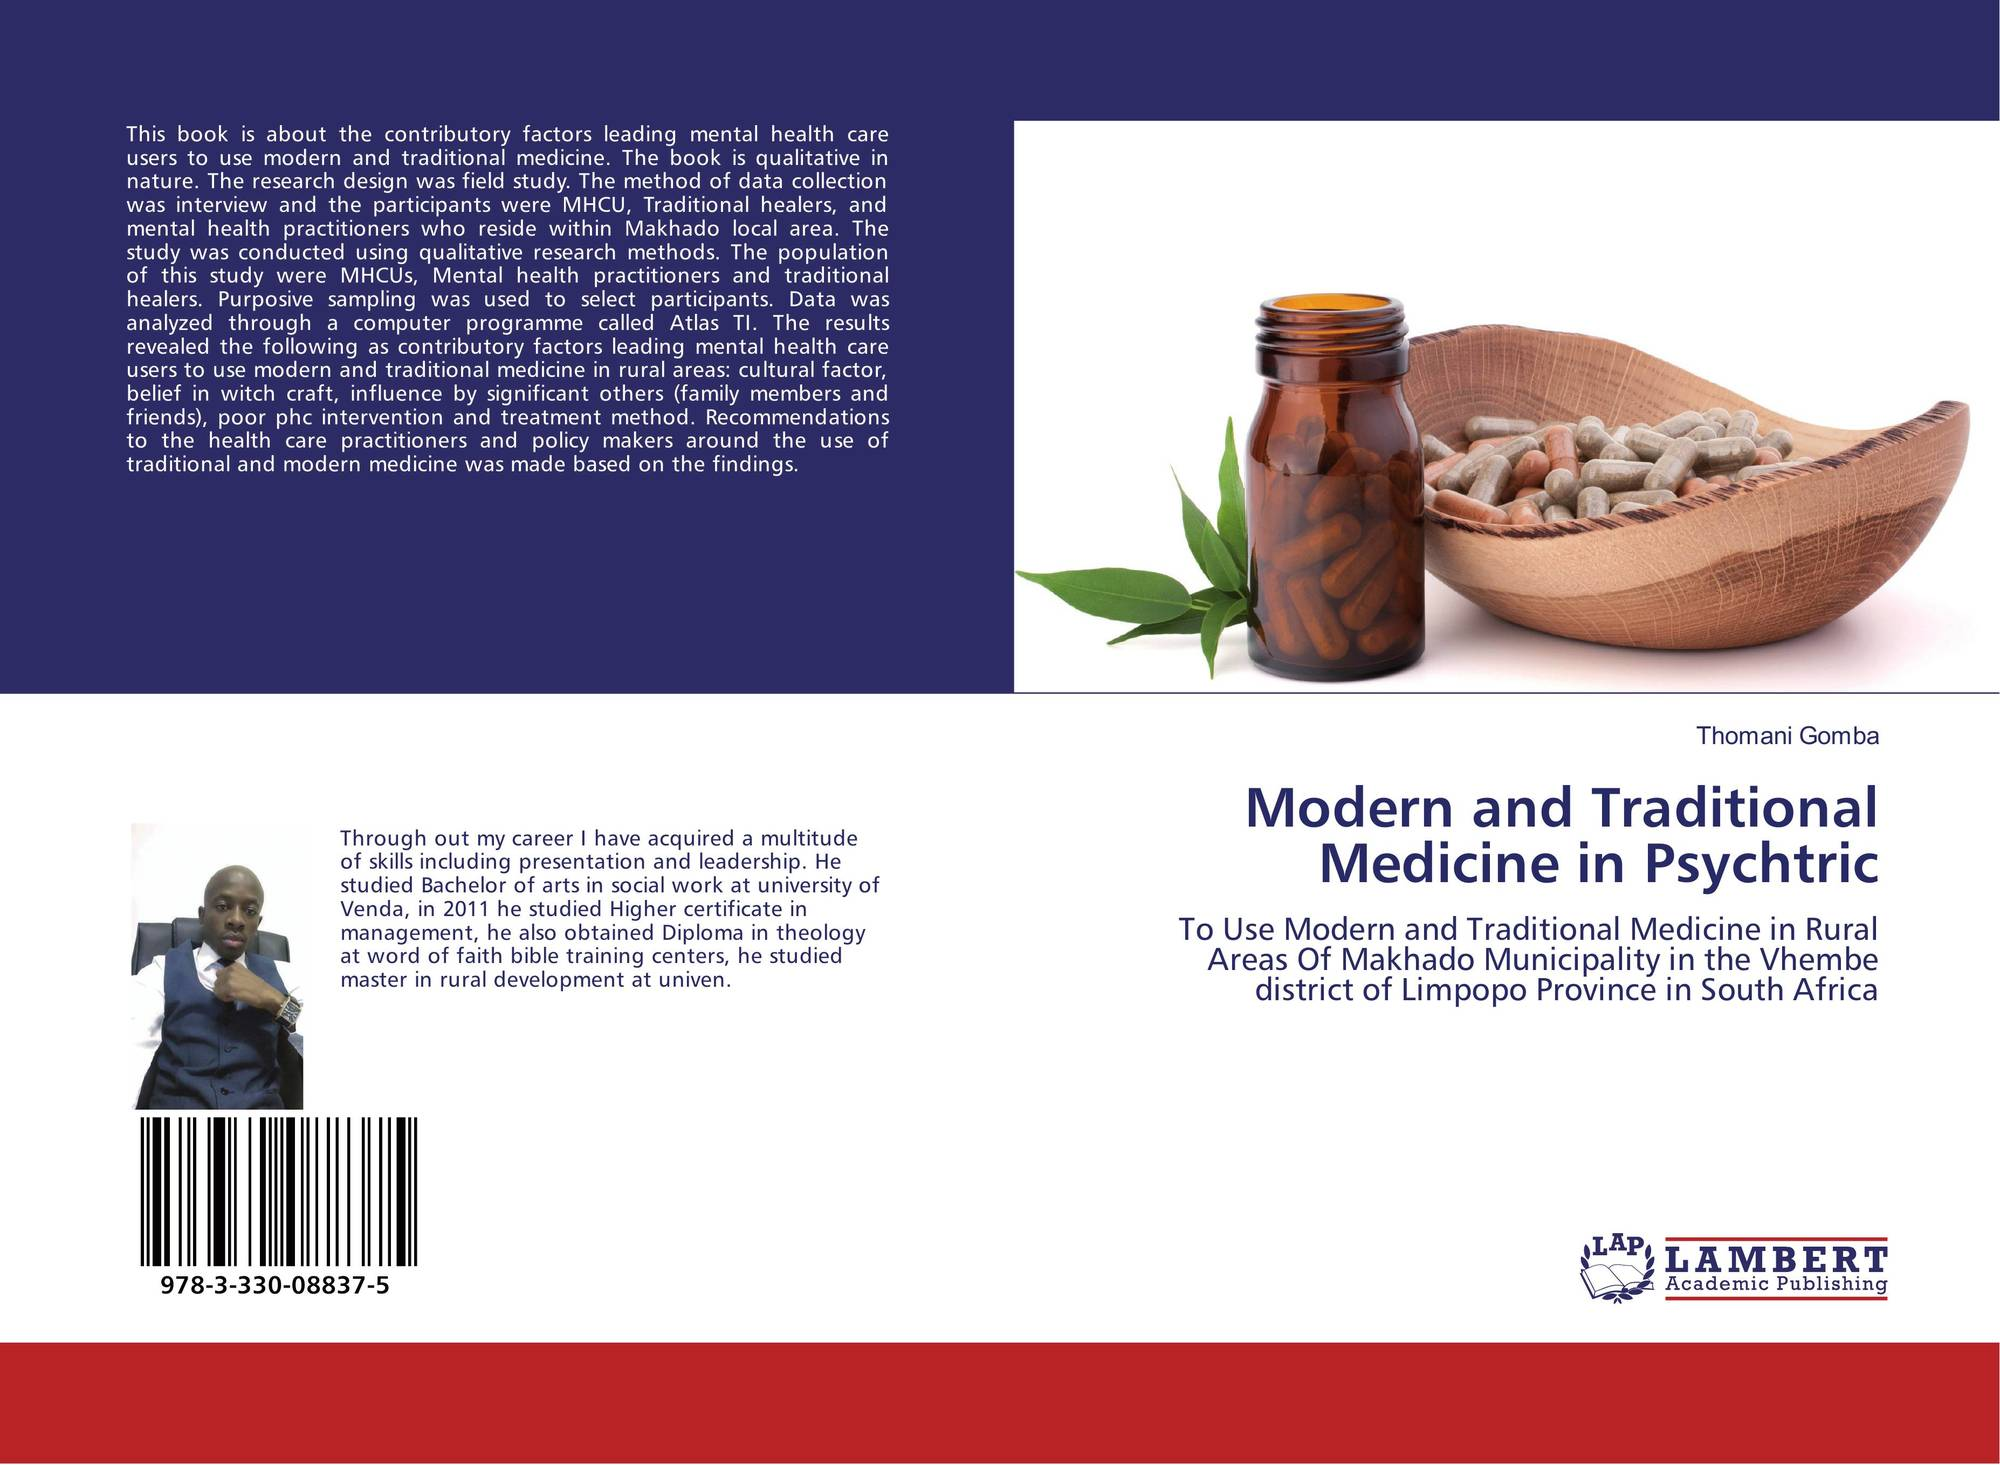 perspectives of healing and medicine in african culture religion essay Modern medicine would be more prevalent in this region if religion did not act as a barrier to the spread of information about this treatment option and the negative characteristics of traditional healing.